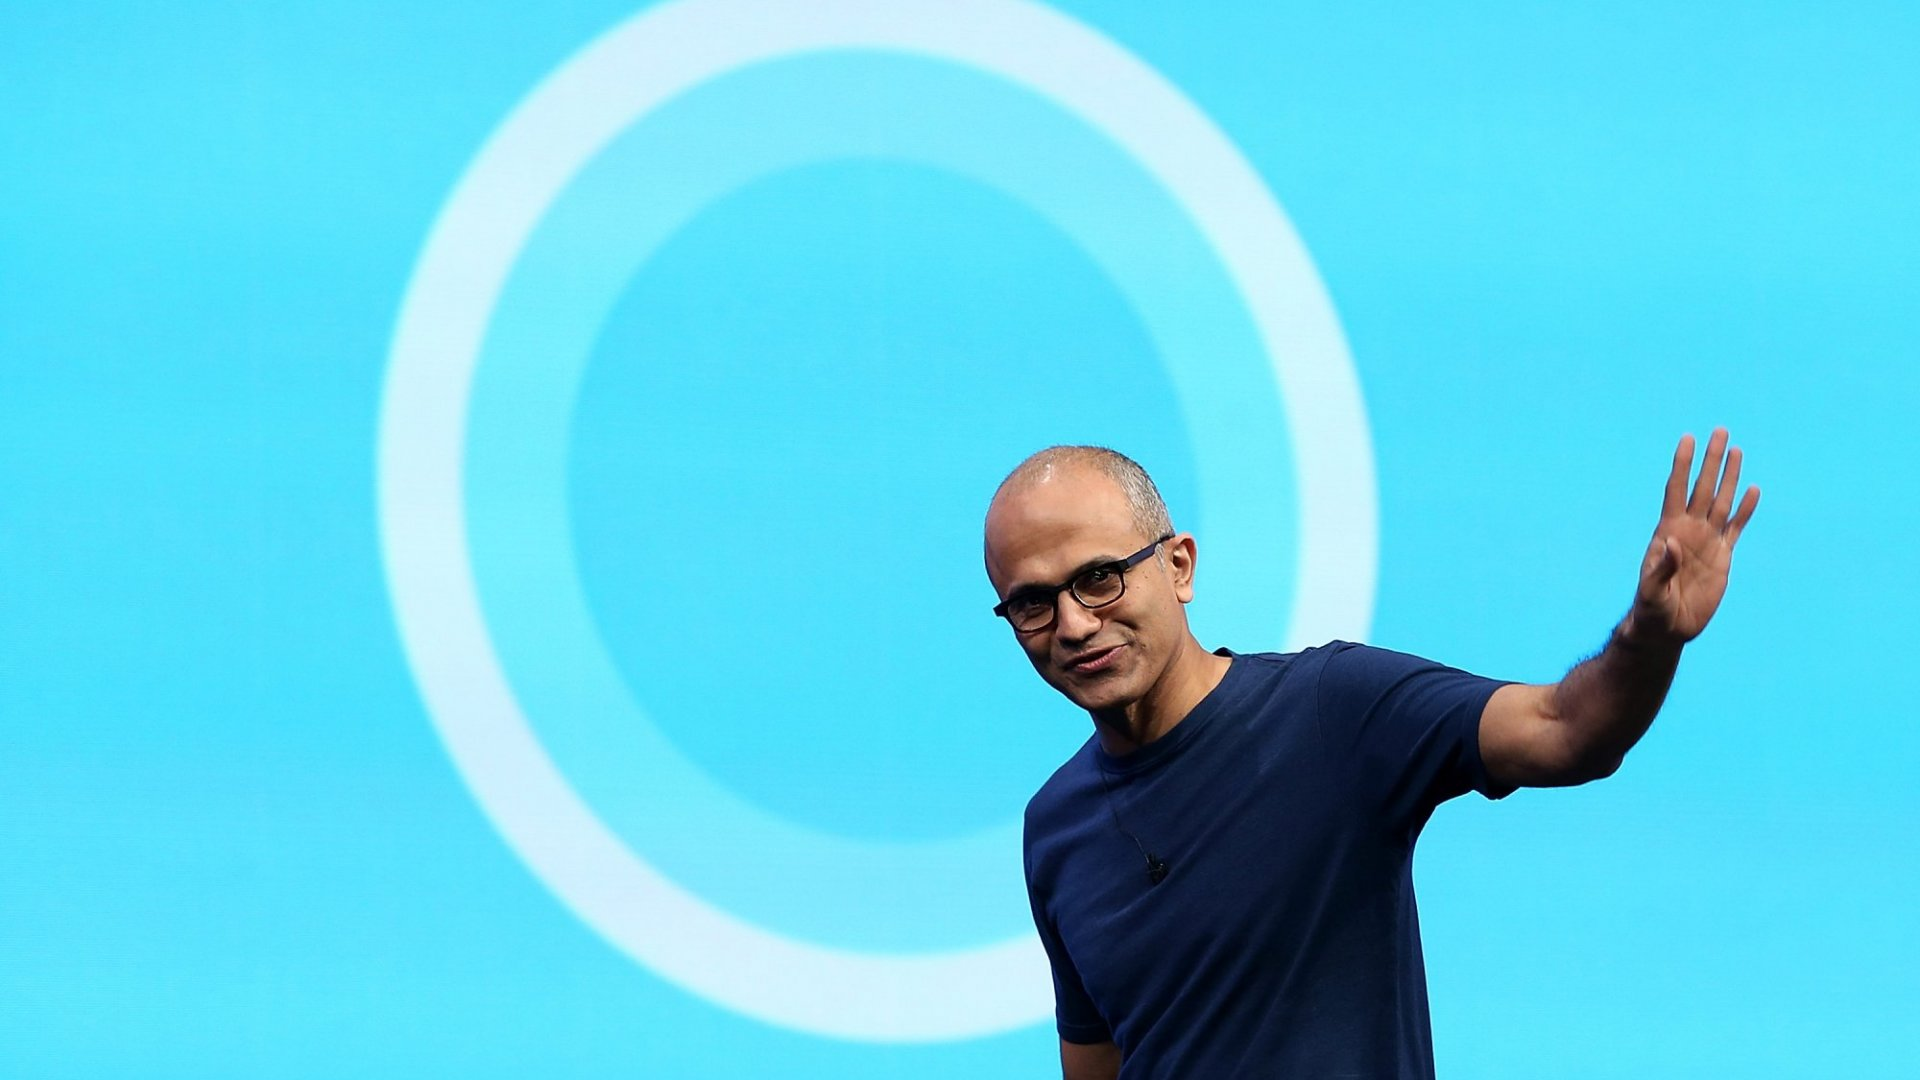 Microsoft CEO Satya Nadella Says This 1 Thing Unlocks Employee Greatness. (It's Why Microsoft Is Winning Again)